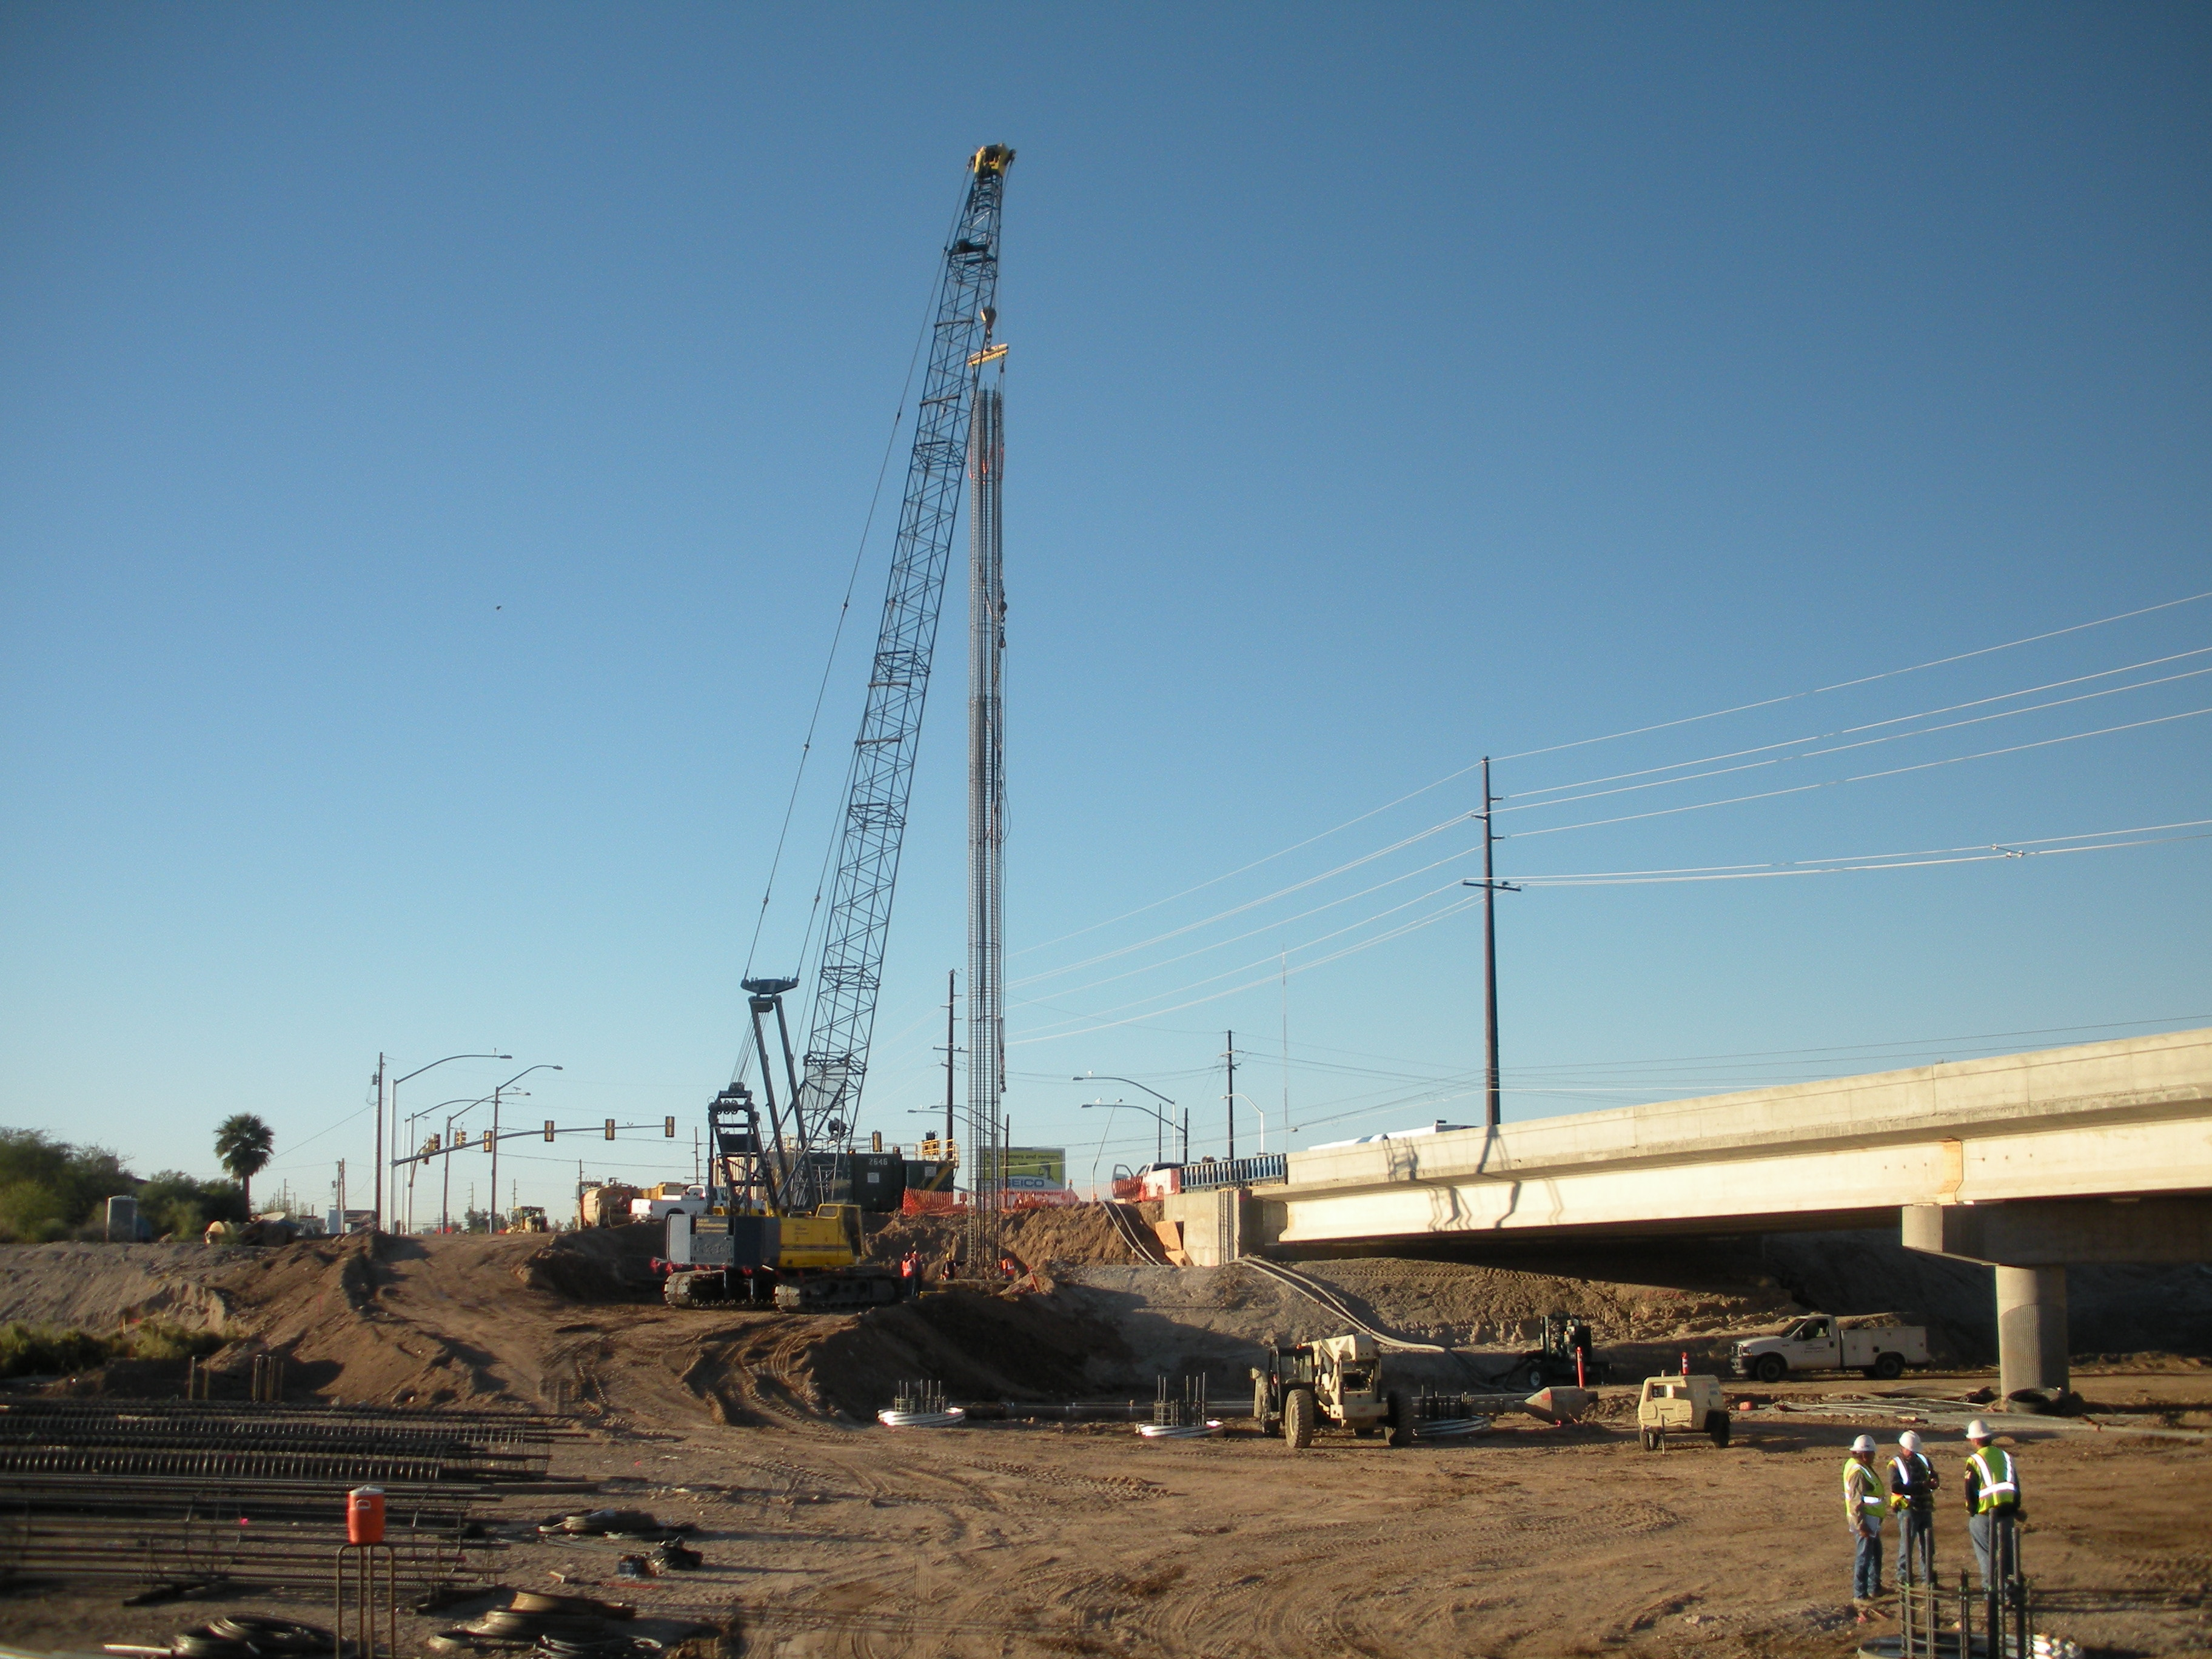 Photo of drilling shafts for the La Cholla Blvd. bridge over the CDO Wash.